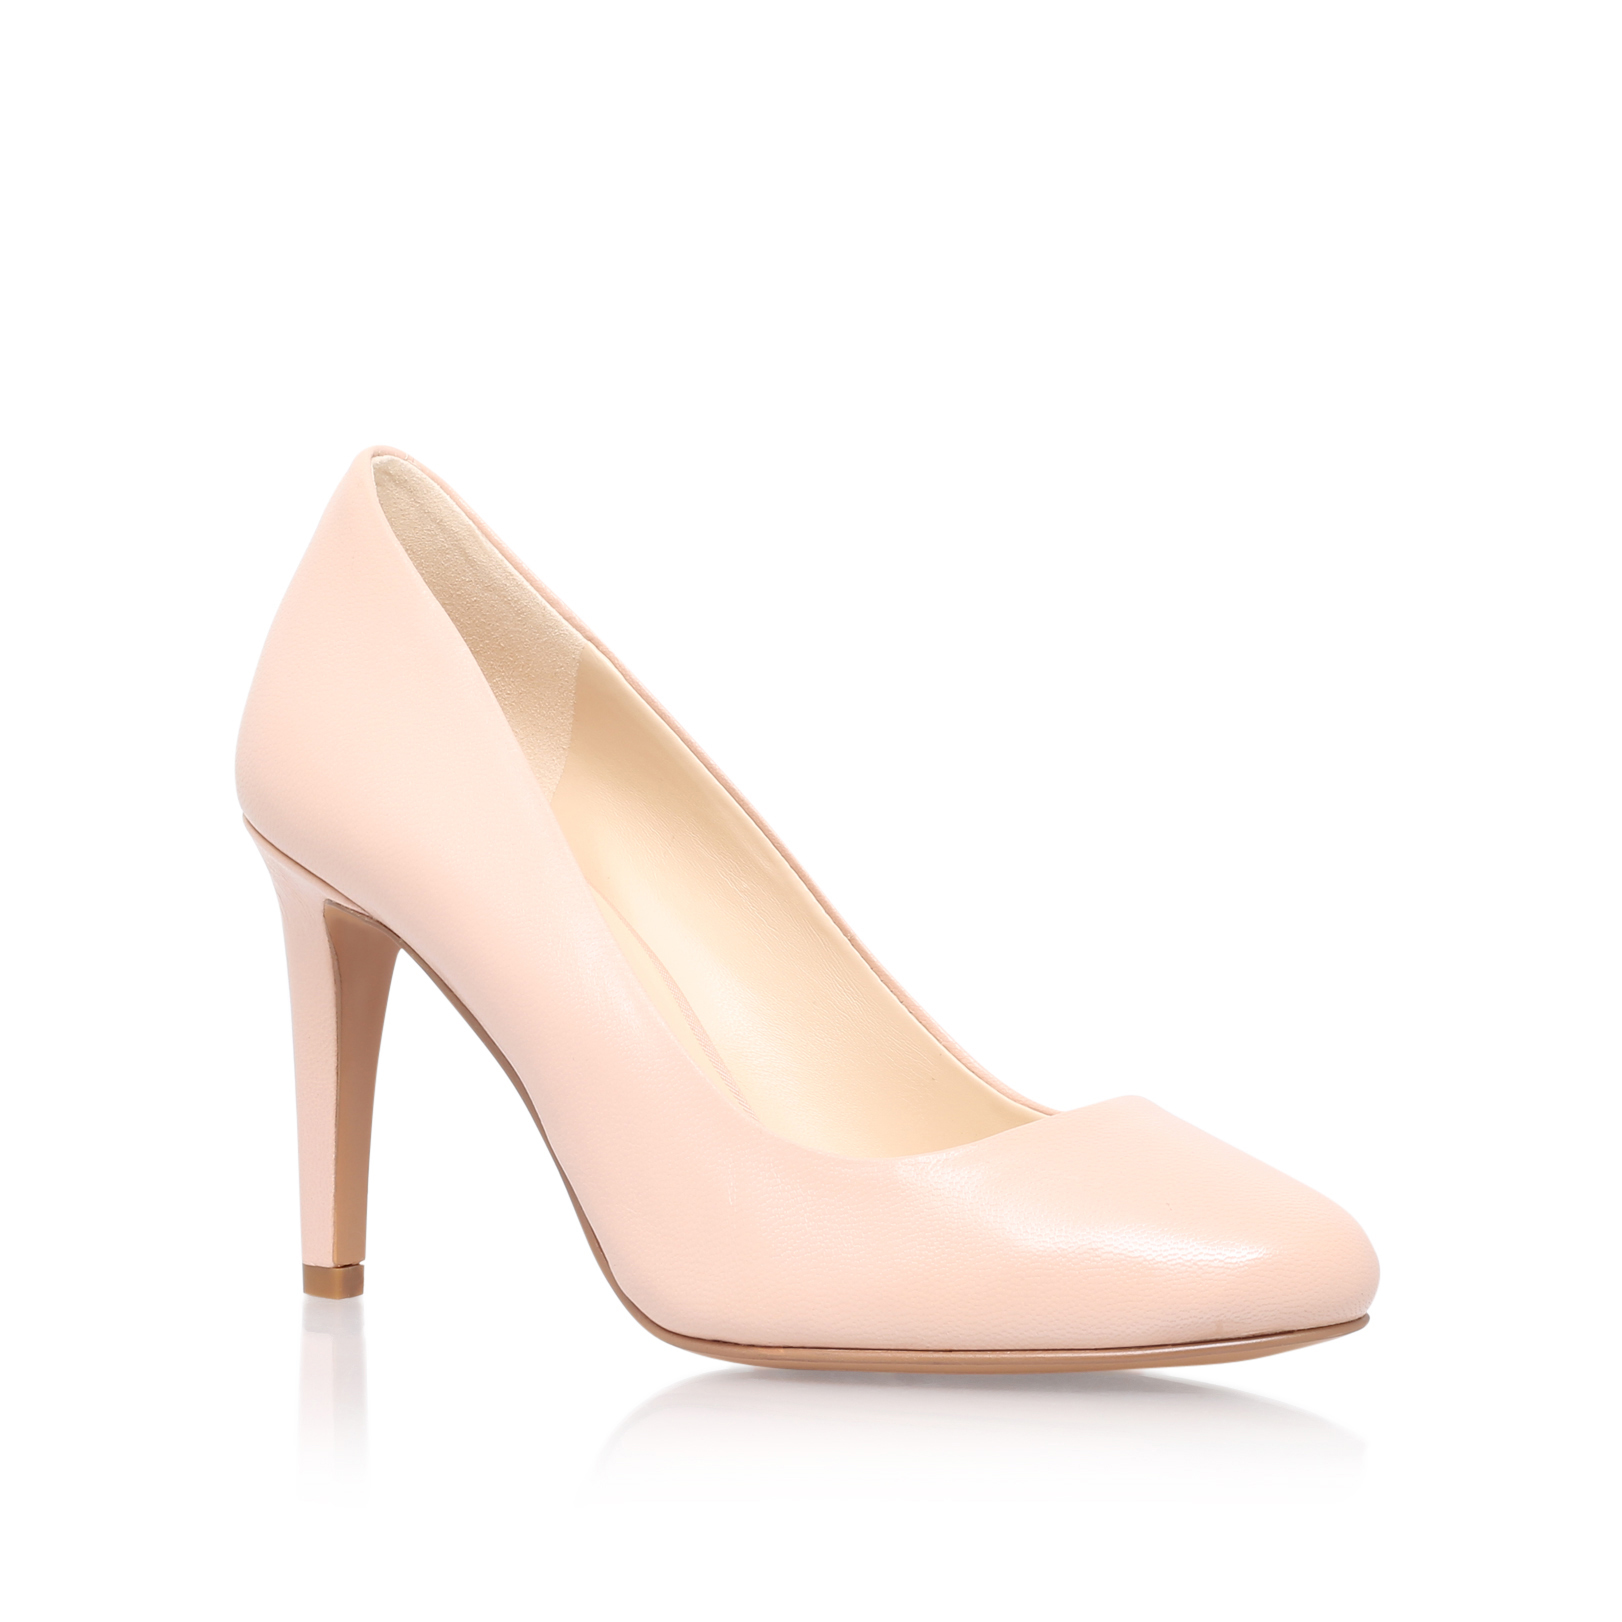 bb96969e5ae NOW25 6833424109. handjive nine west nude leather high heel court shoes by